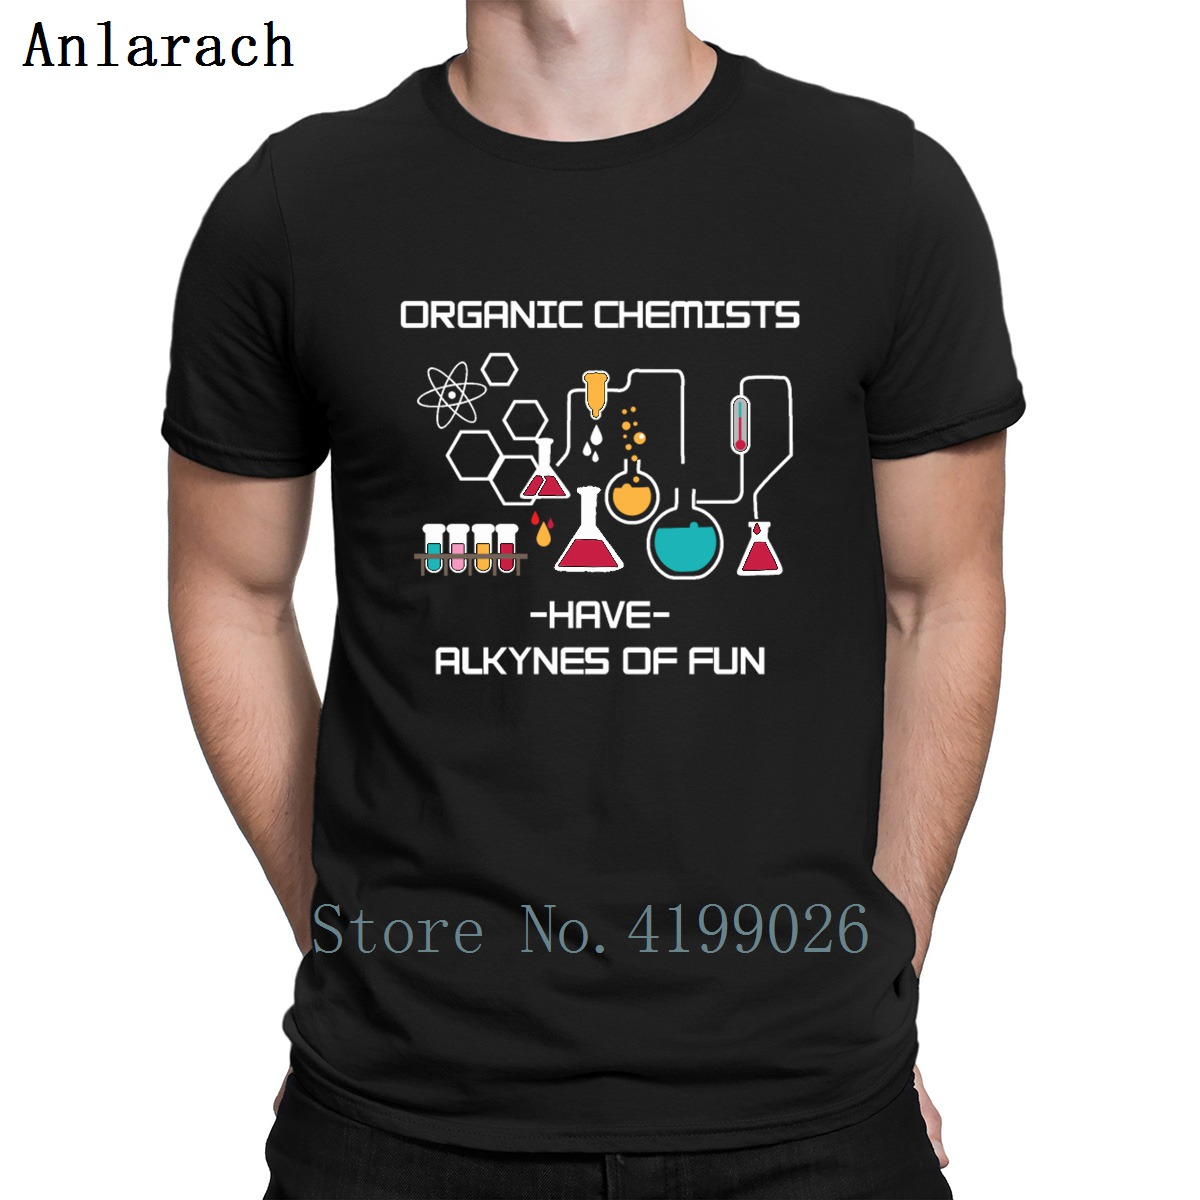 Funny Organic Chemists Science Science Fun Gift   T     Shirt   Mens Fashion New Style Designer   Shirt   Summer Style Designer Hiphop